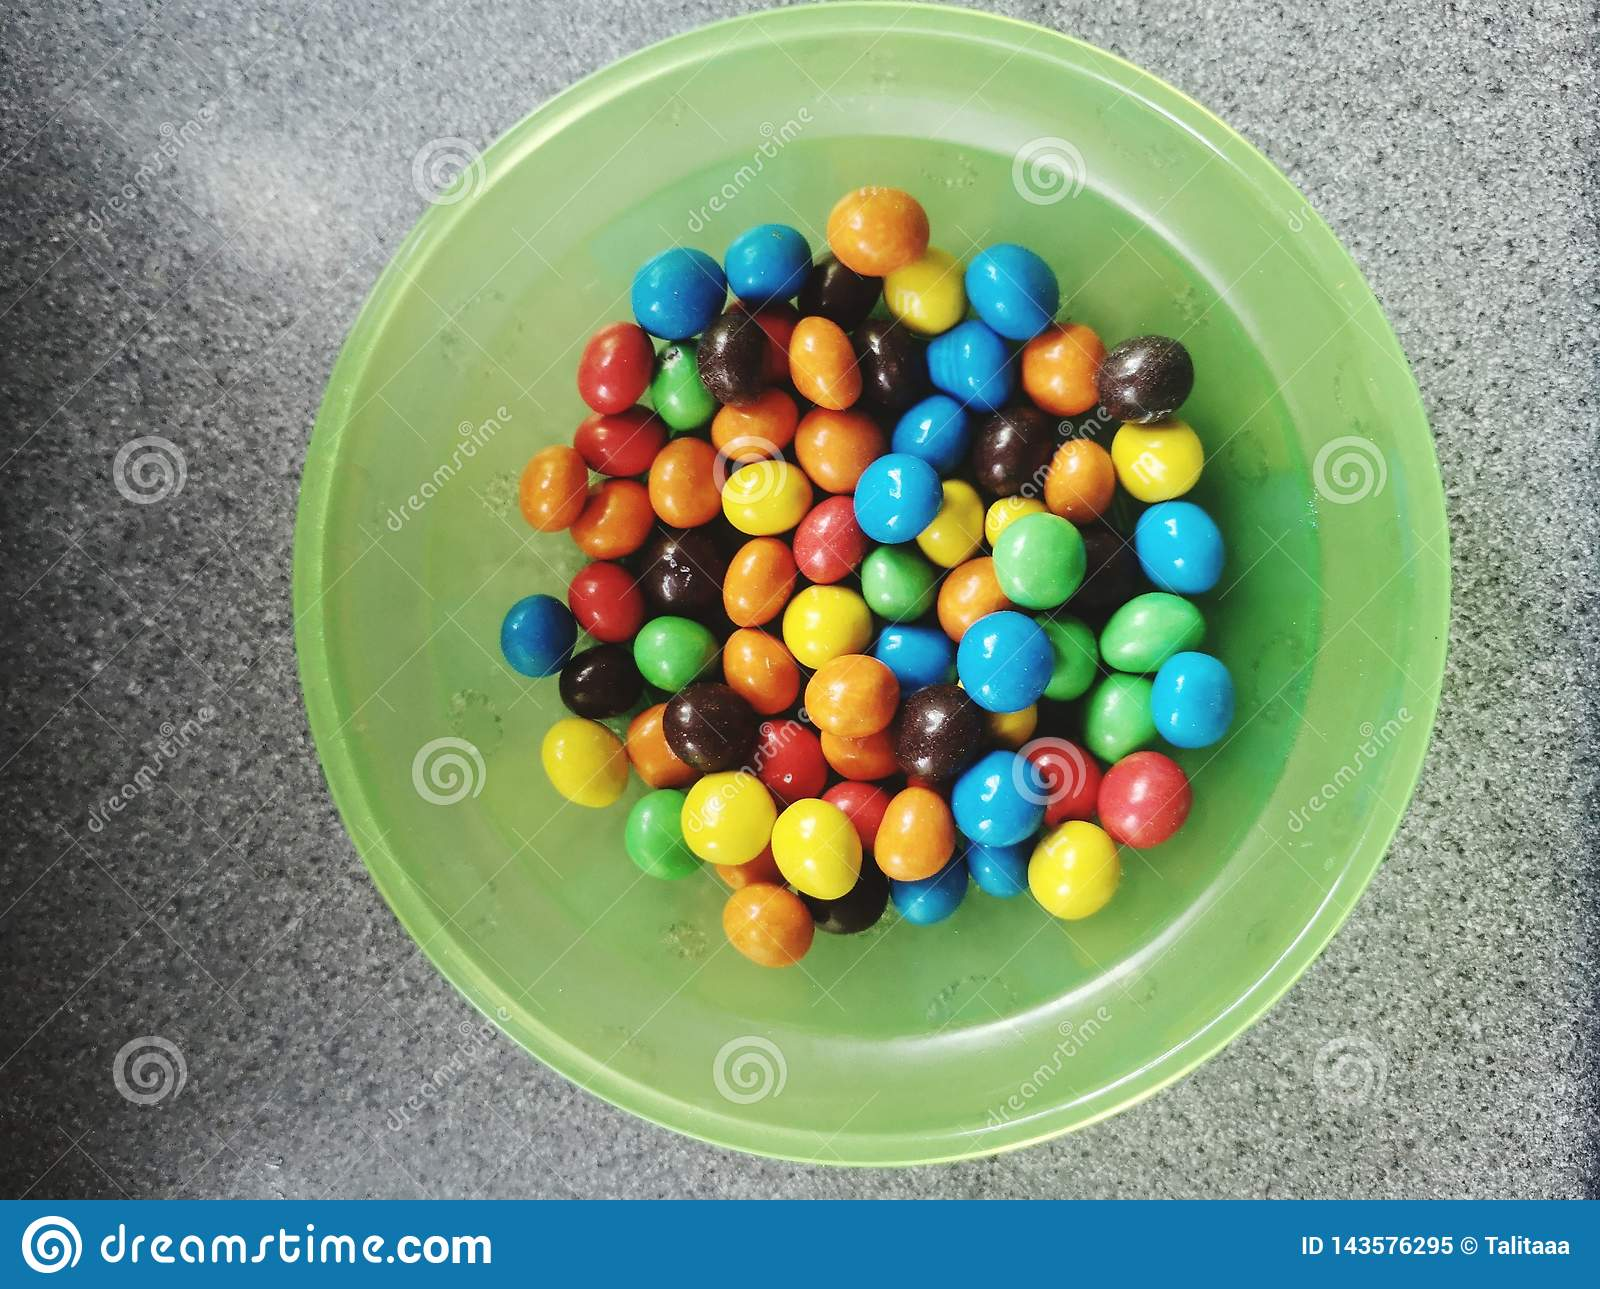 The candy ,  I love them , colored sweets in a green bowl on the table